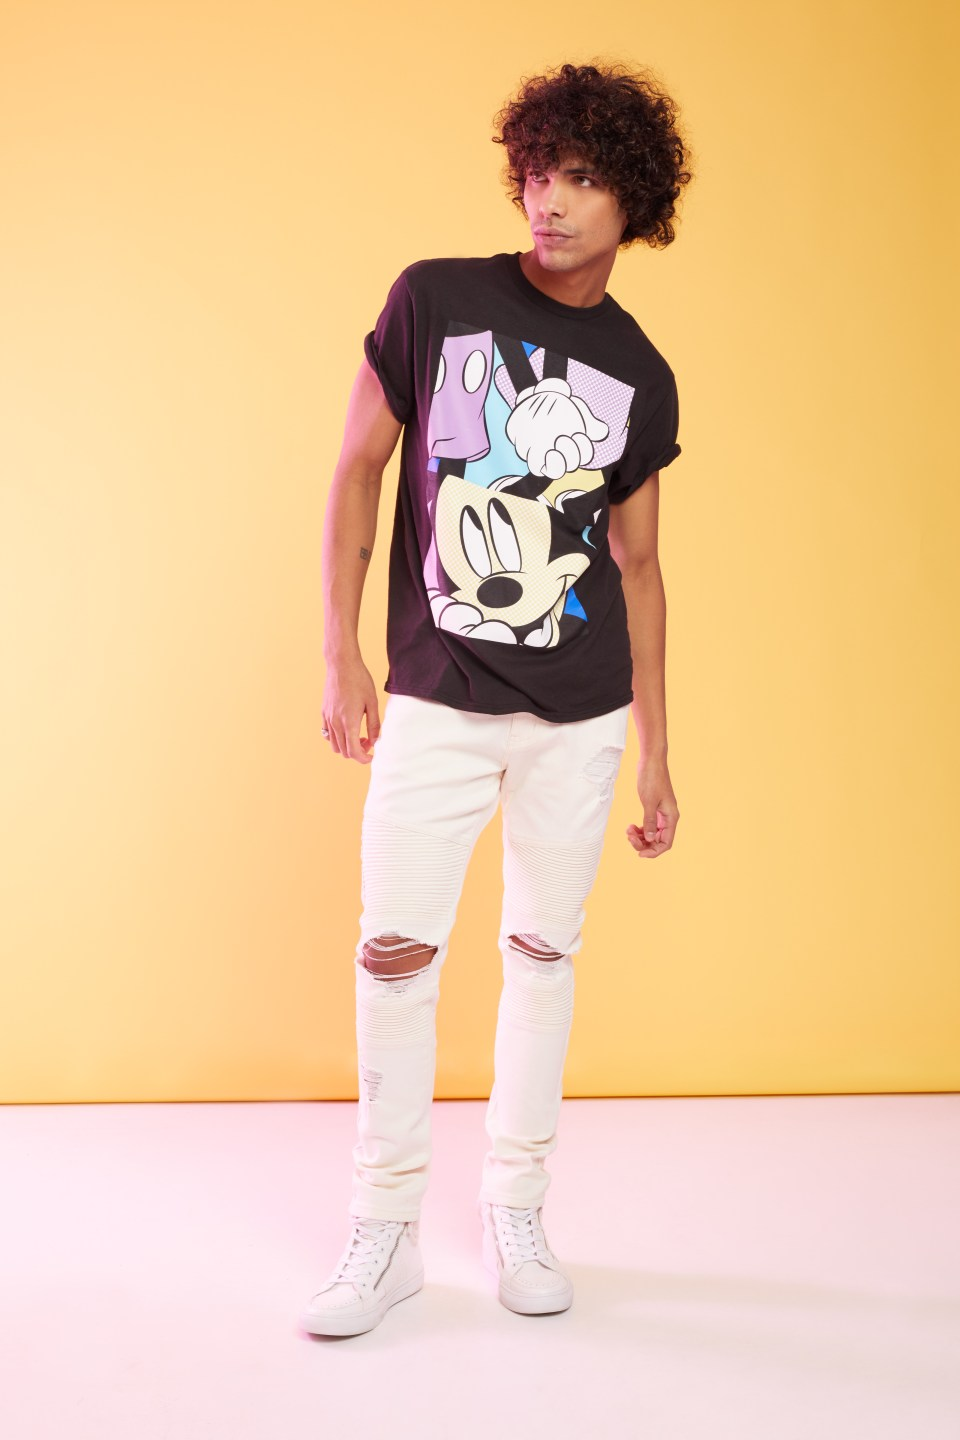 A male model wearing a Mickey Mouse Graphic tee with ripped skinny jeans and sneakers.